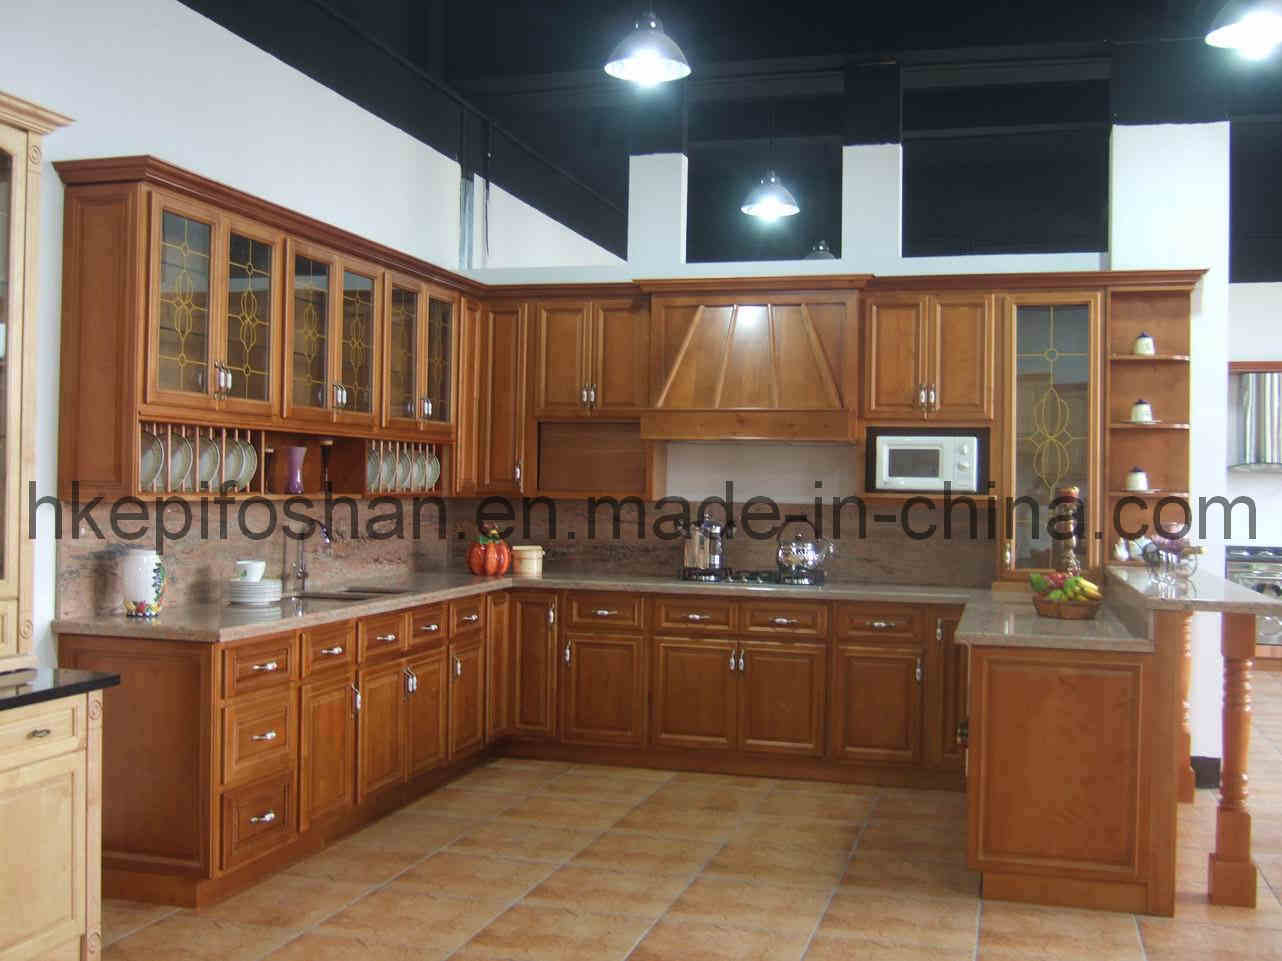 China kitchen cabinet kc 005 china kitchen cabinet for Chinese kitchen cabinets